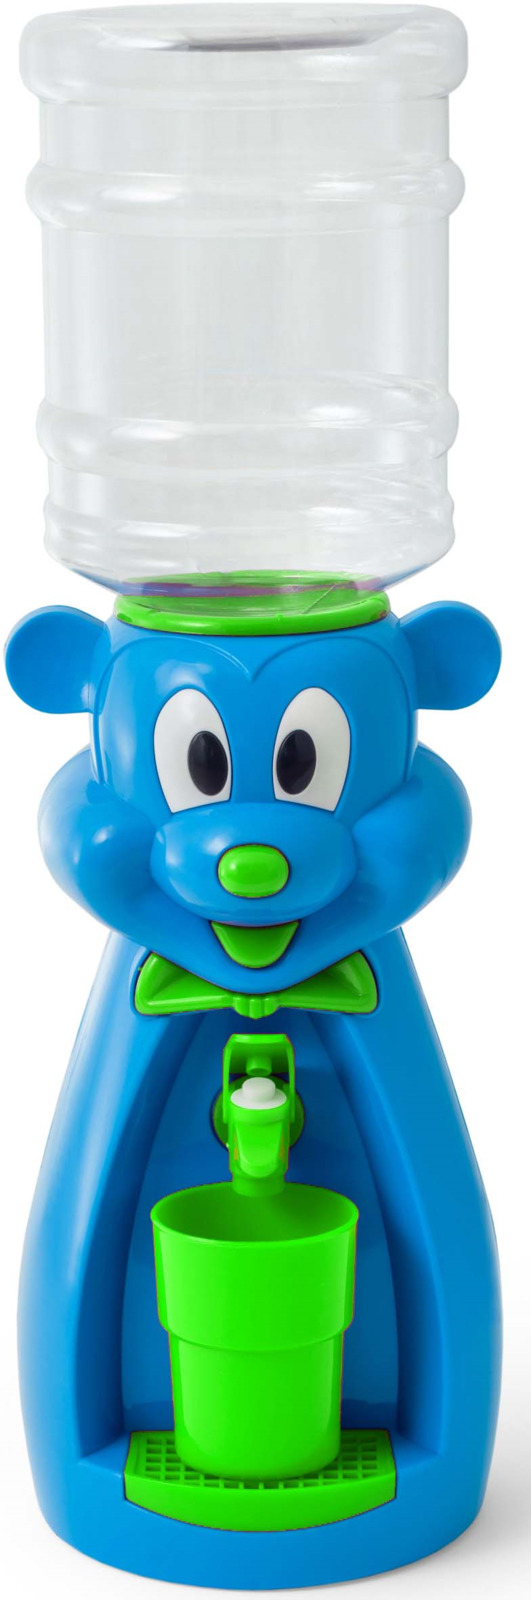 Кулер для воды Vatten Kids Mouse, Blue кулер для воды vatten kids mouse green red со стаканчиком